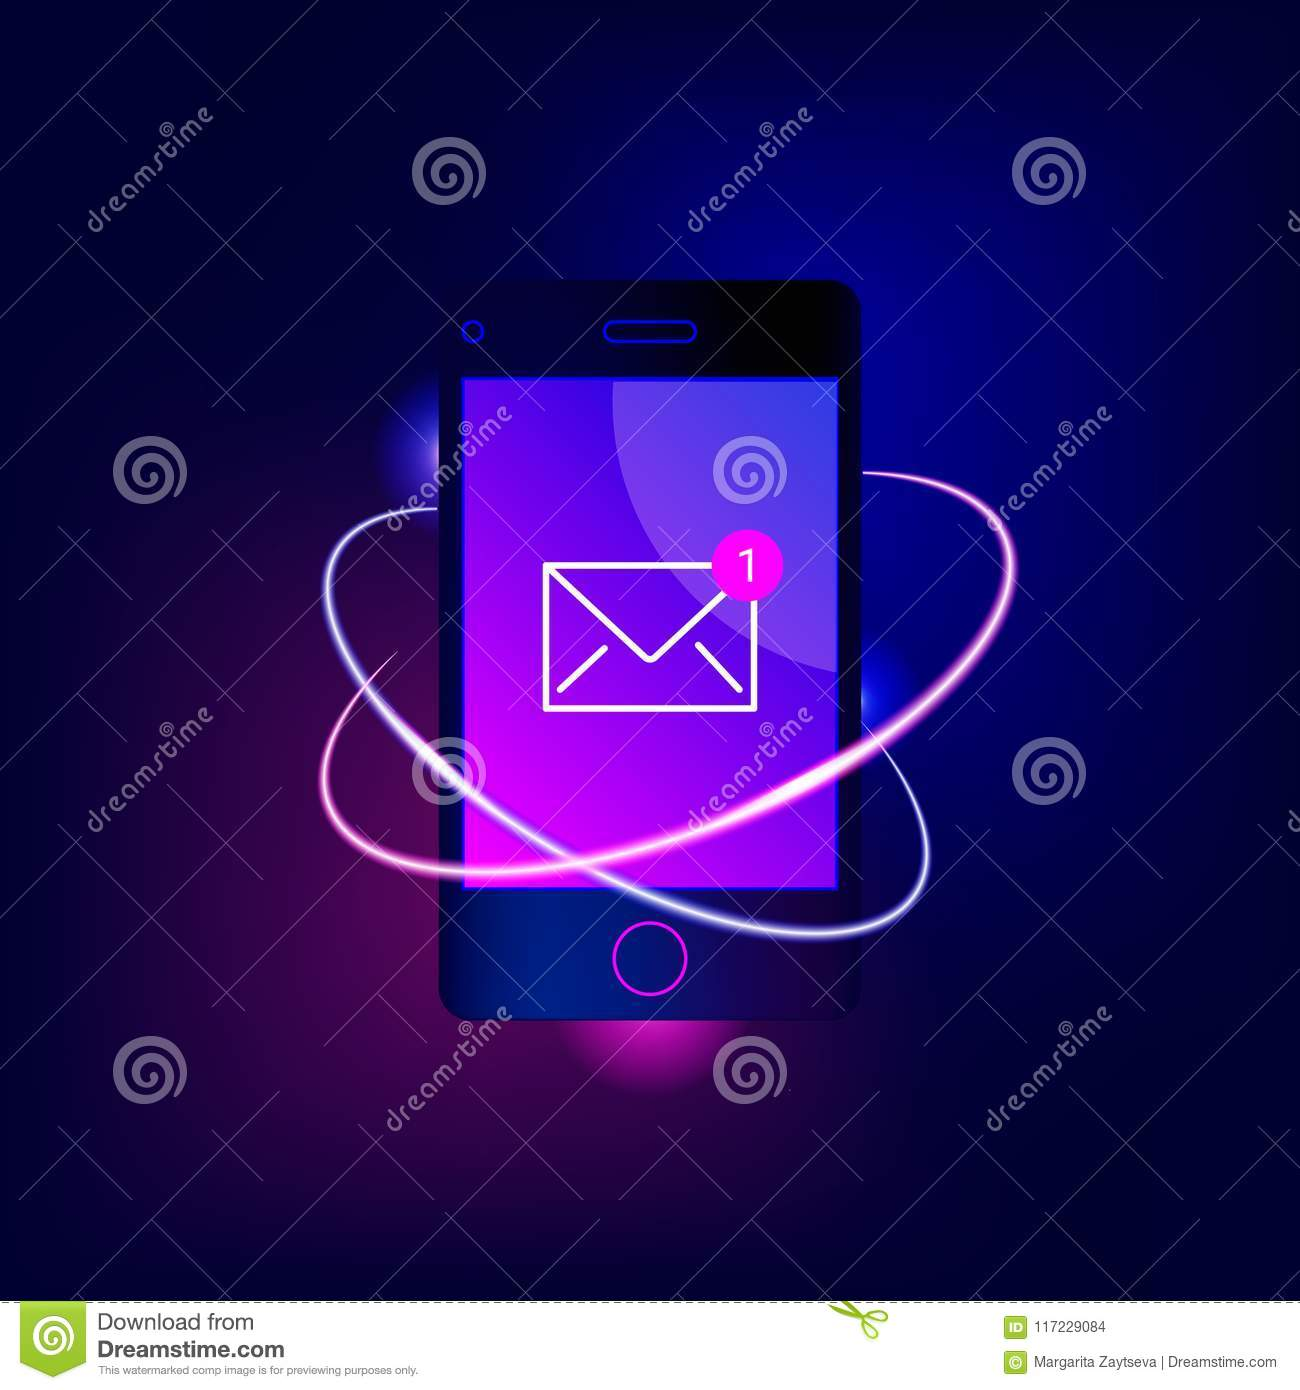 New Email Notification On Mobile Phone  Stock Vector